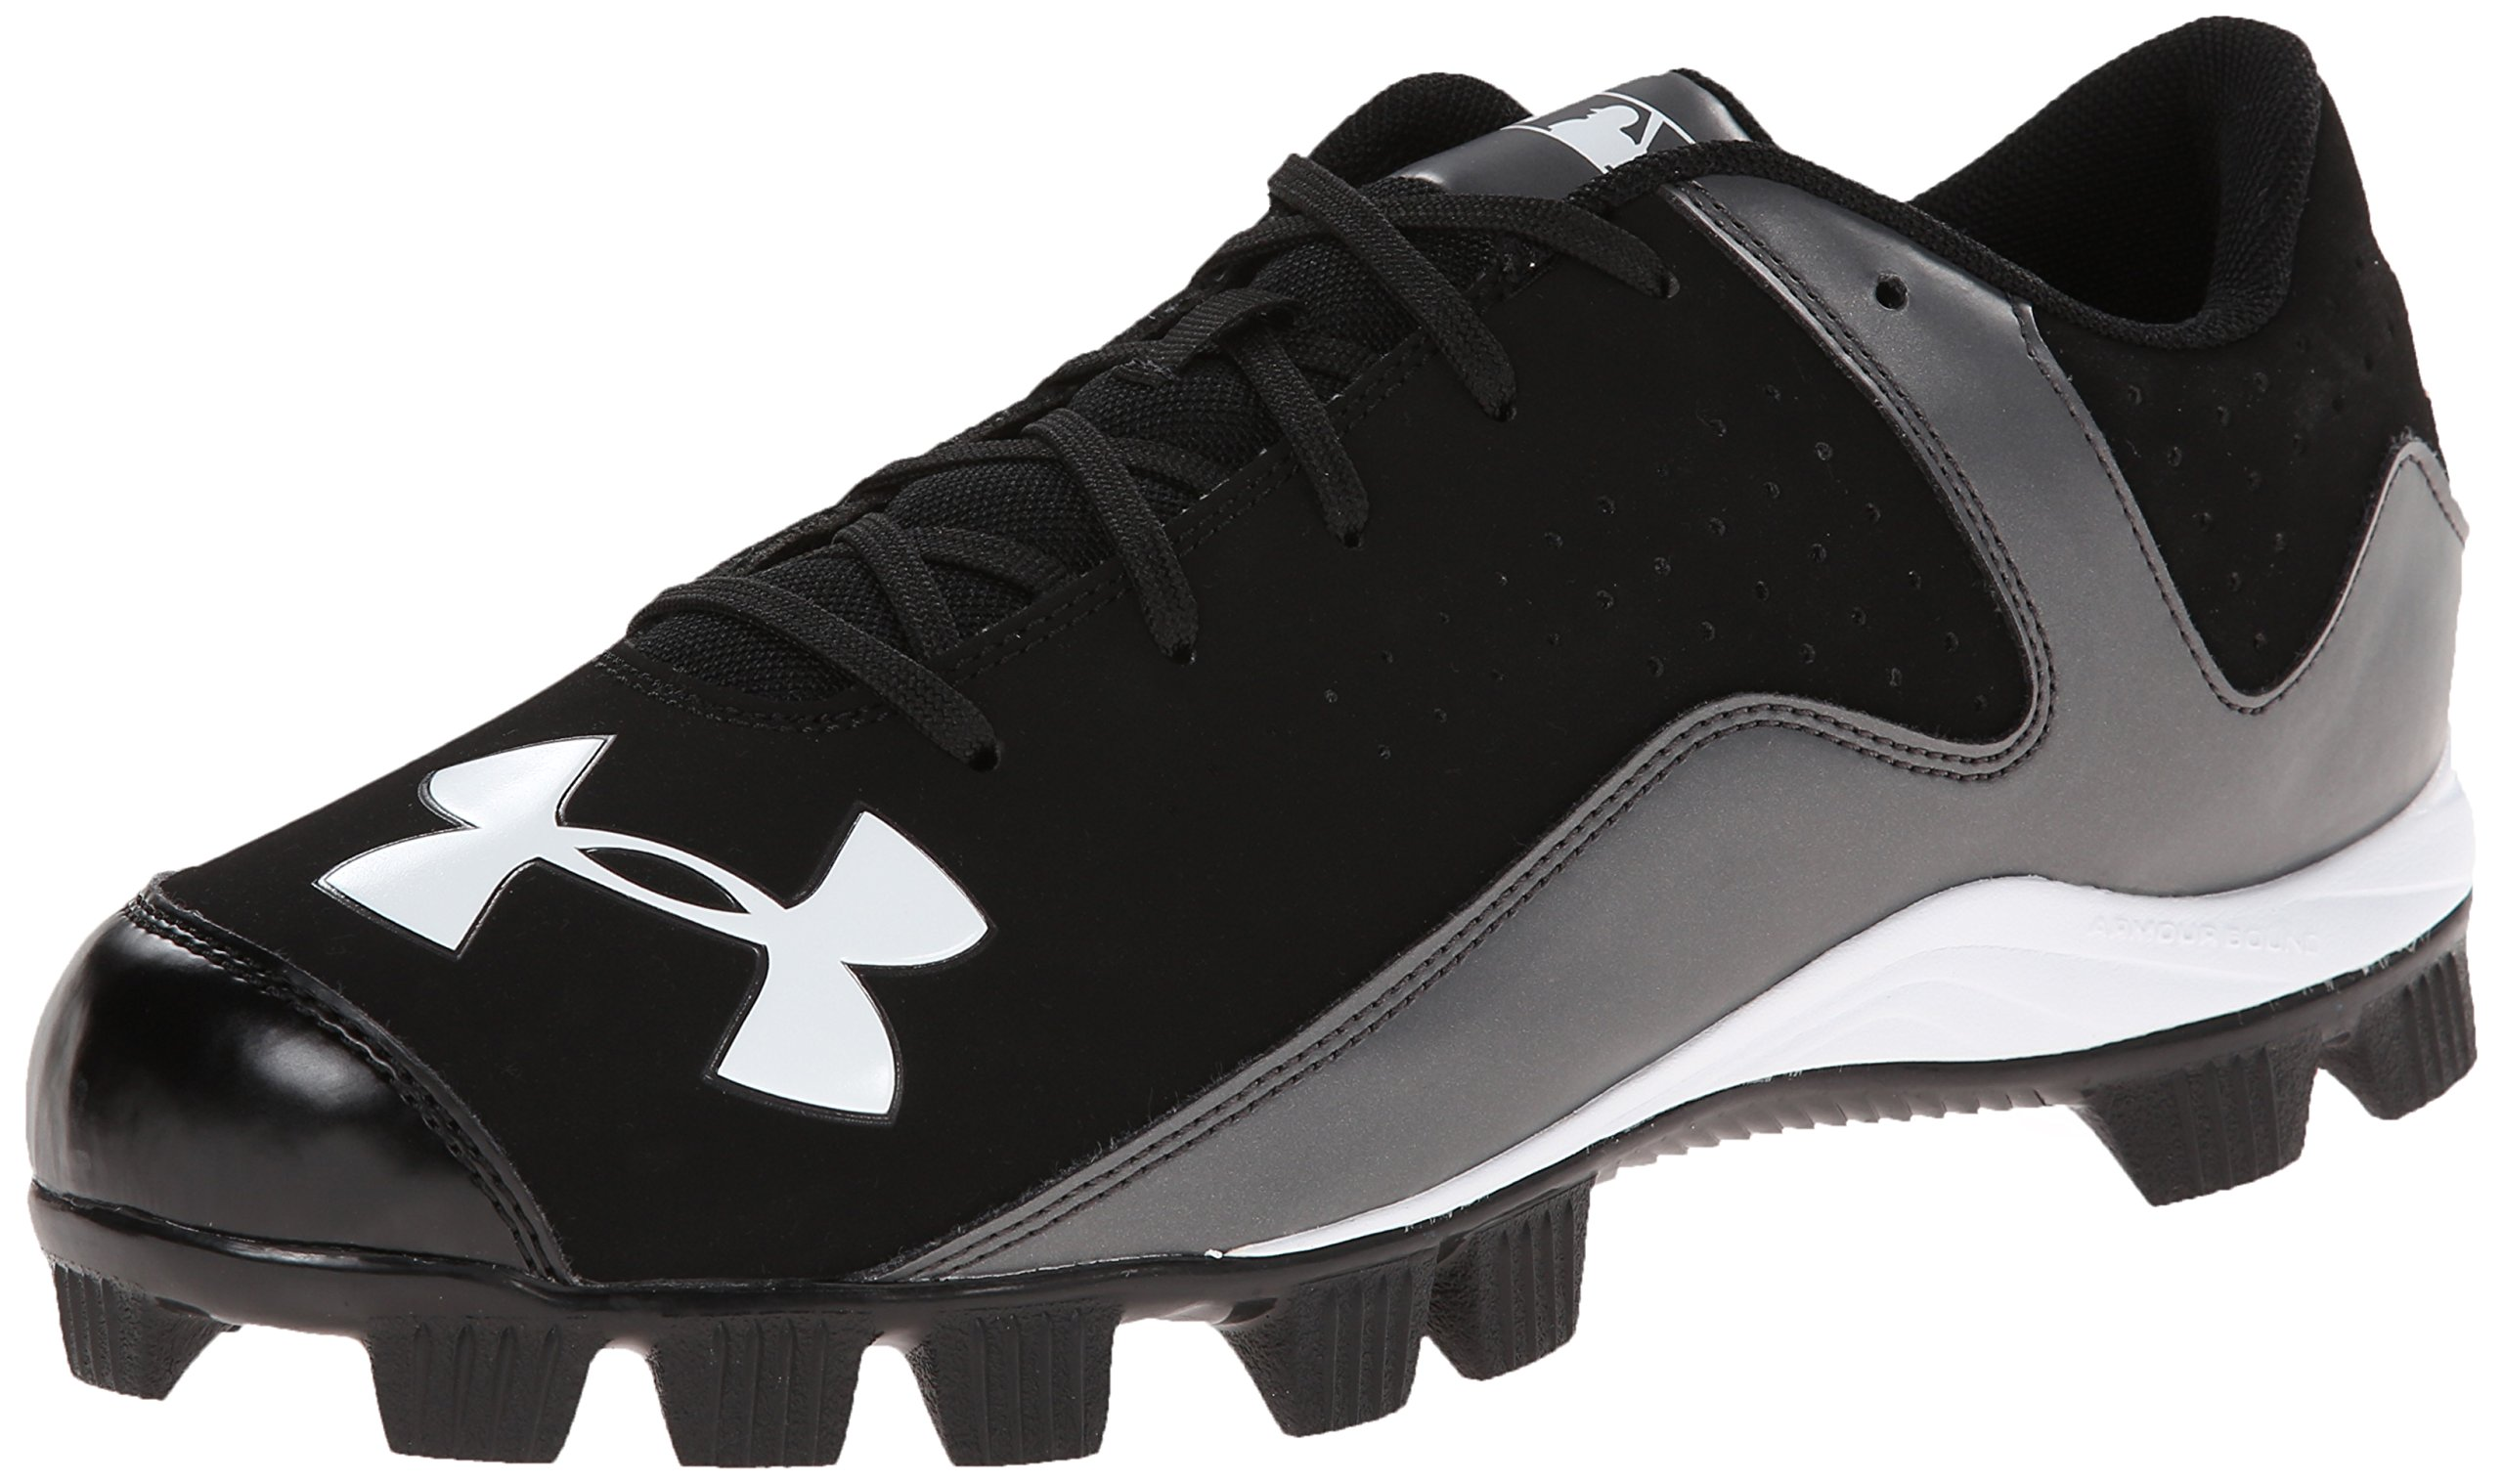 Under Armour Men's Leadoff Low RM Baseball Cleats Black/Charcoal Size 14 M US by Under Armour